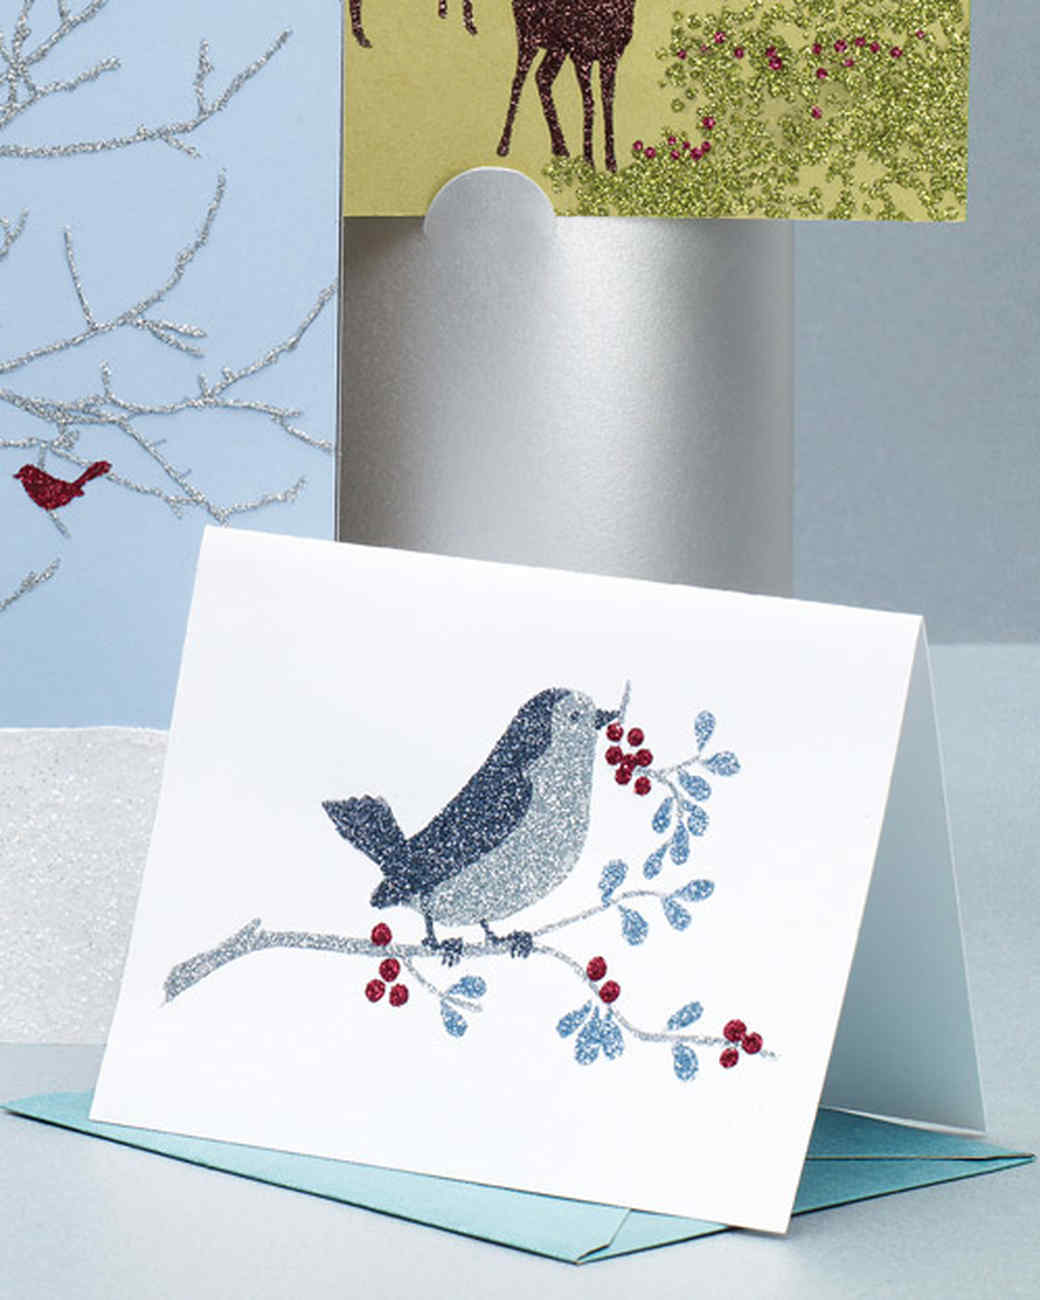 Glittered Clip-Art Bird and Berry Cards